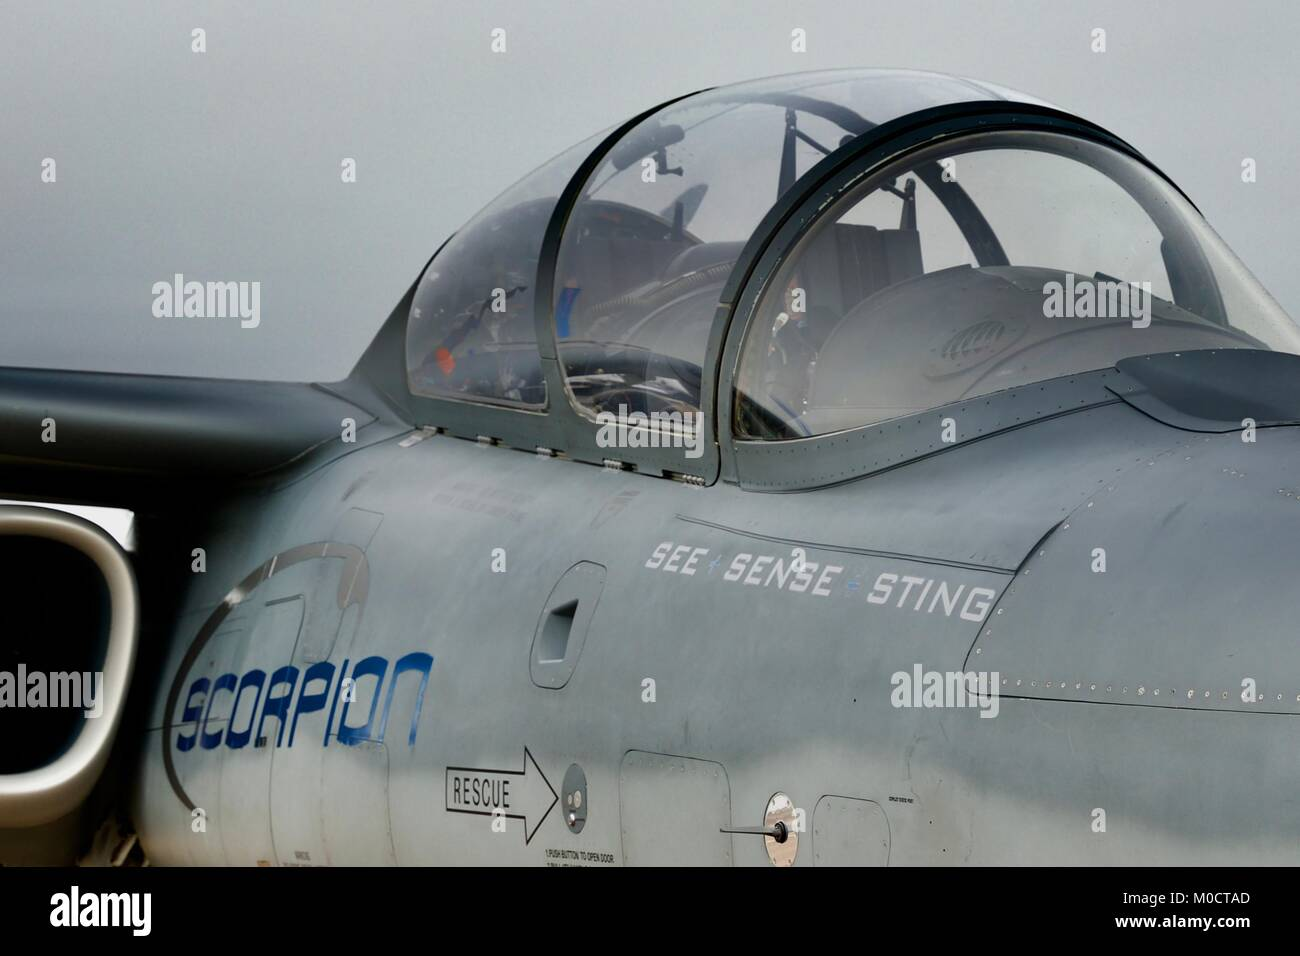 Textron AirLand Scorpion - A new generation of affordable fighter jets manufactured by Textron AirLand, LLC - Stock Image